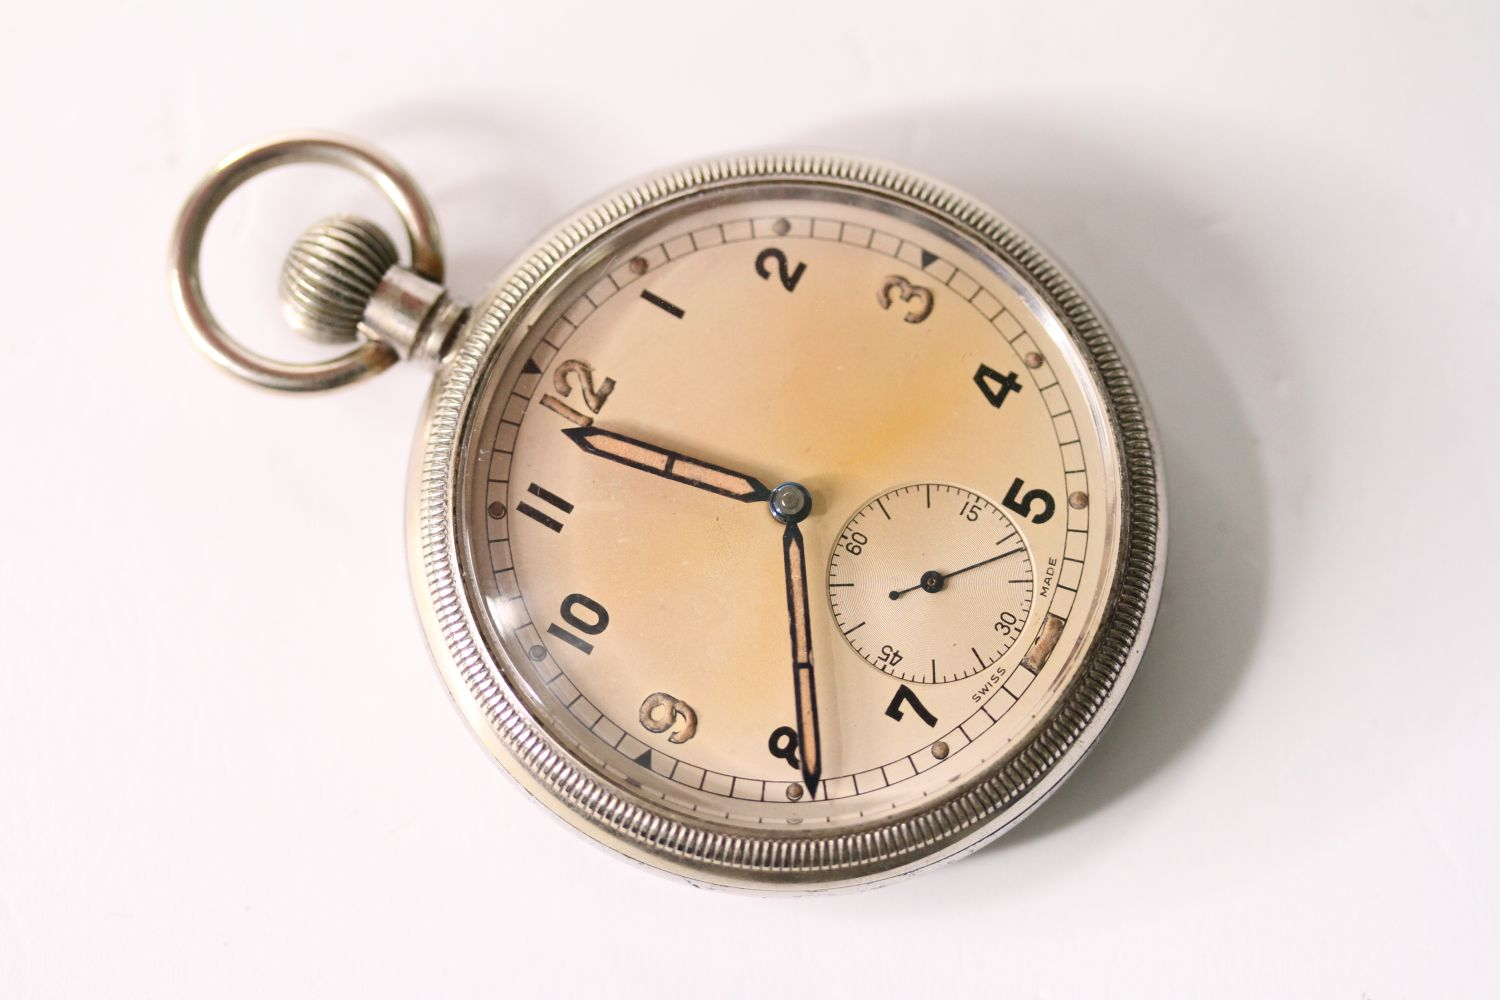 VINTAGE REVUE THOMMEN G.S.T.P MILITARY POCKET WATCH SERVICED, circular cream dial with arabic